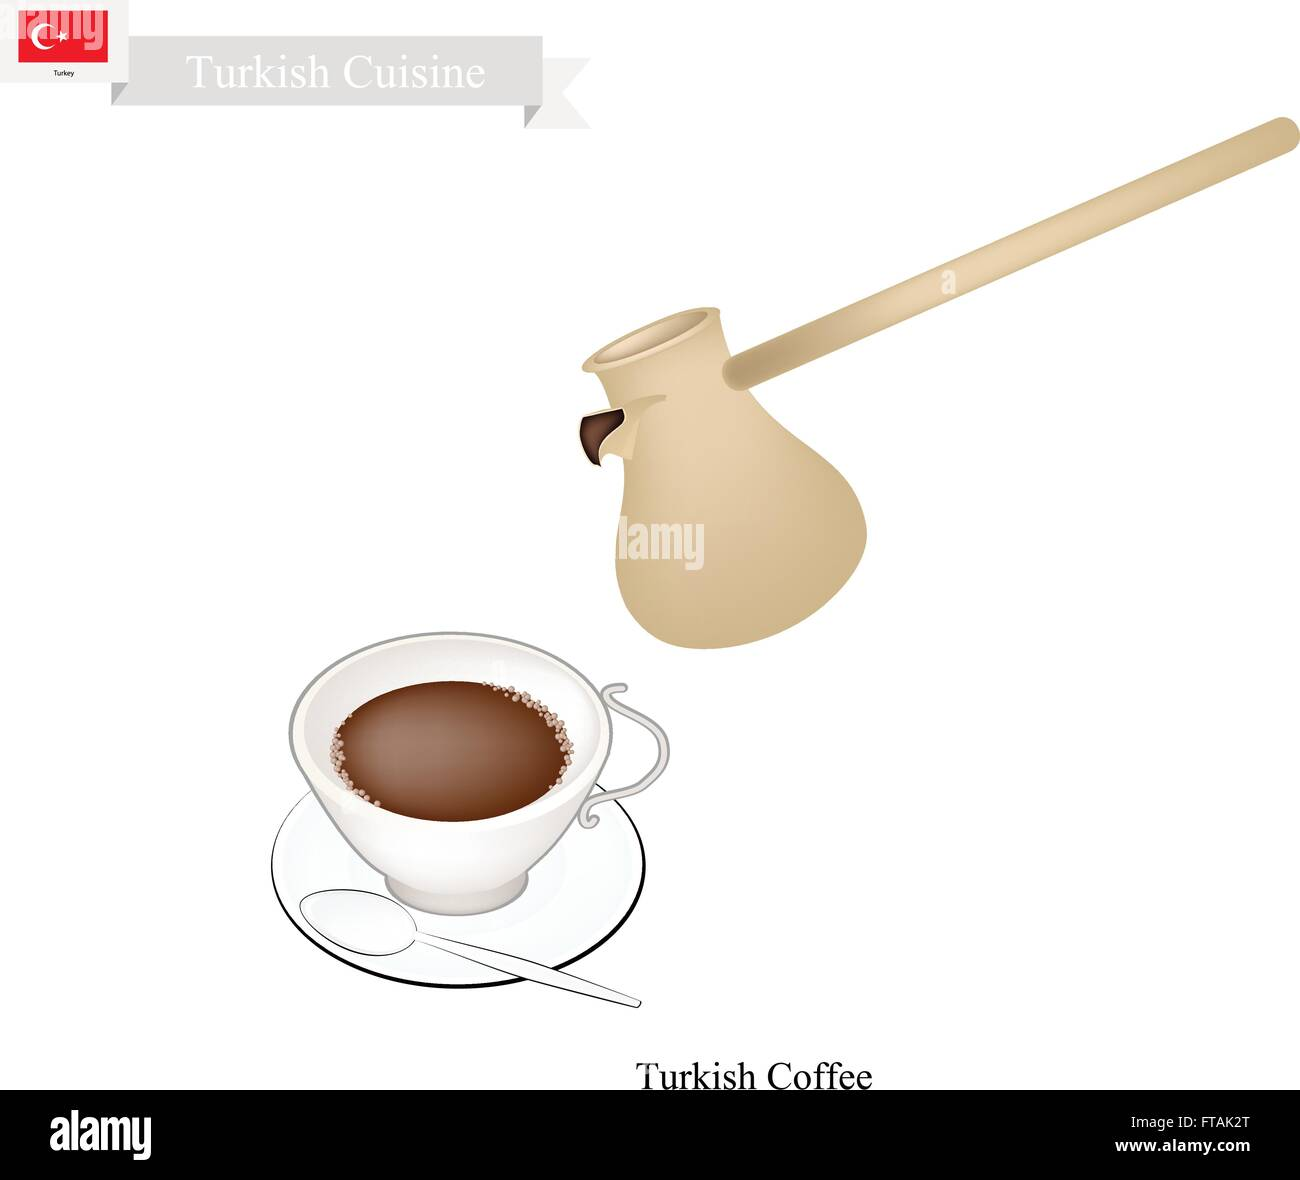 Turkish Cuisine, Turkish Coffee with Cezve or Turkish Coffee Pot. One of The Popular Beverage in Turkey. - Stock Vector